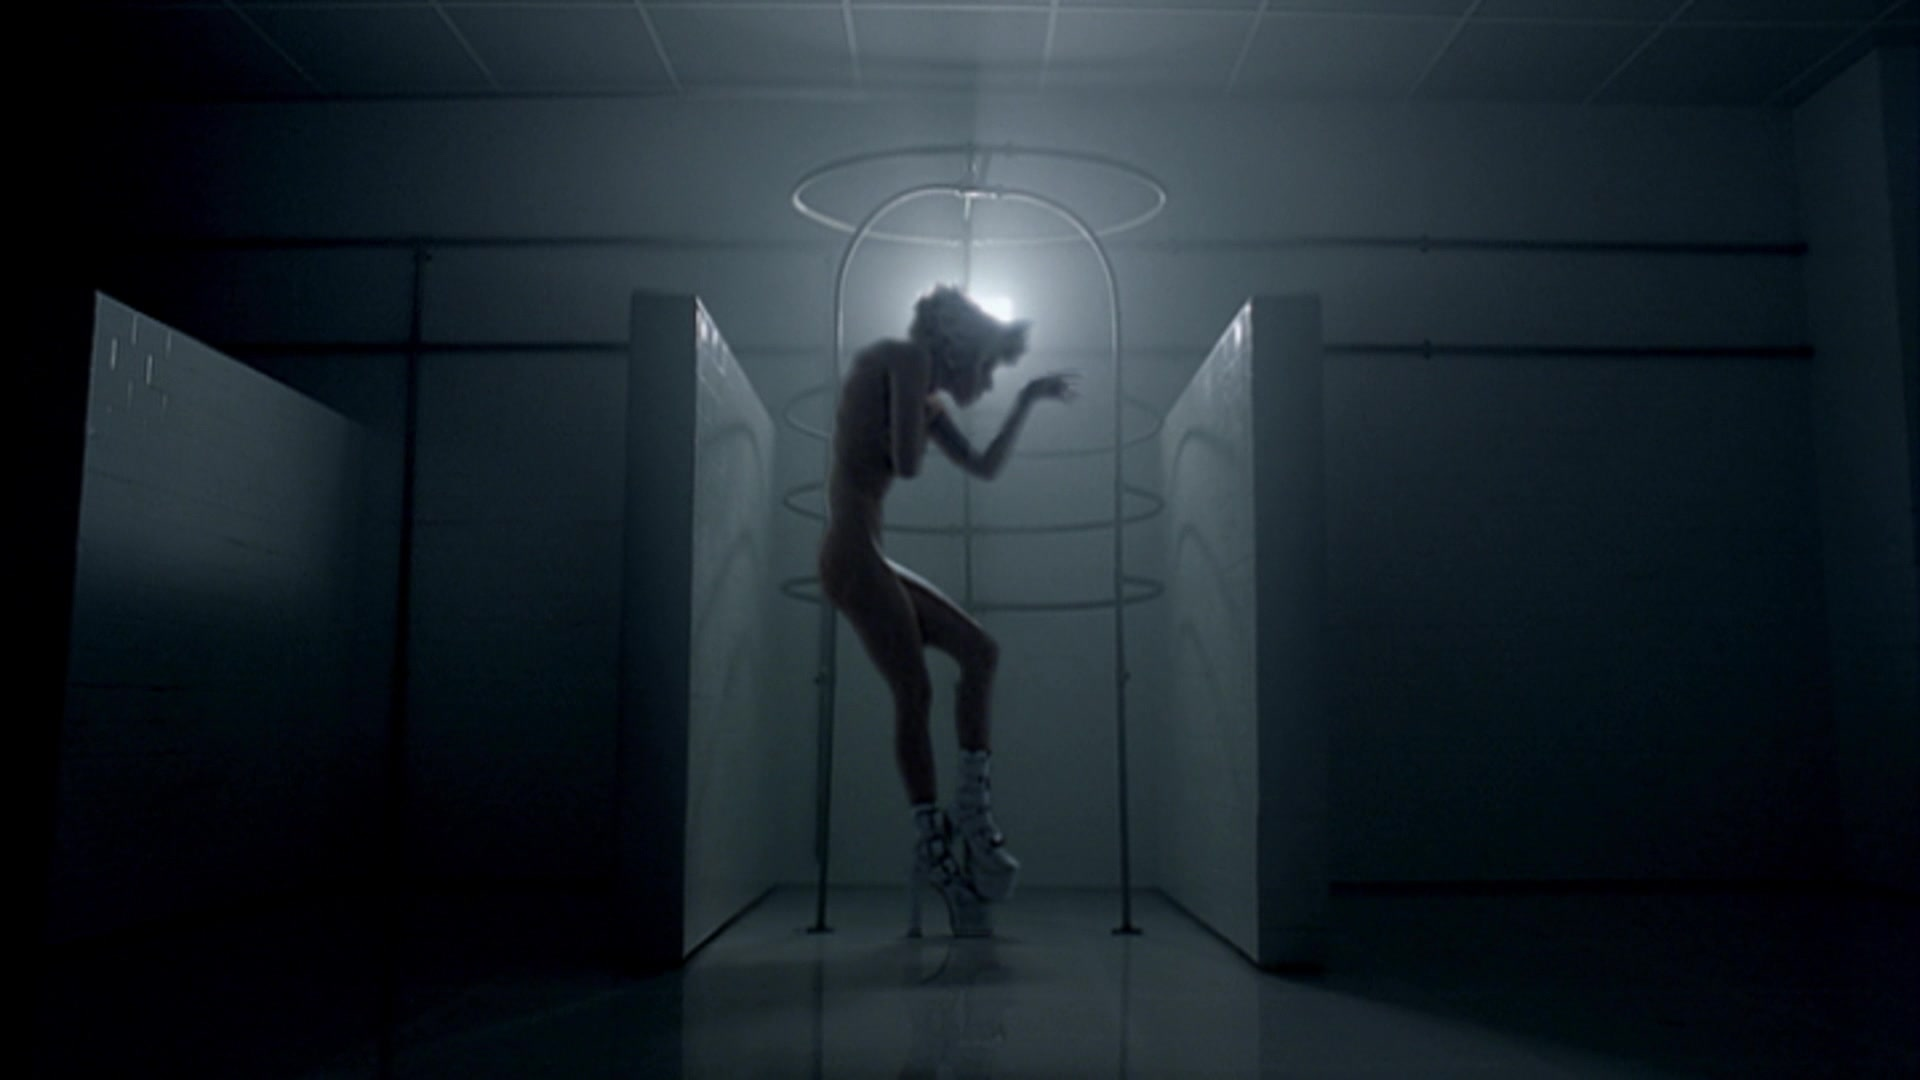 File:Lady Gaga - Bad Romance 019.jpg